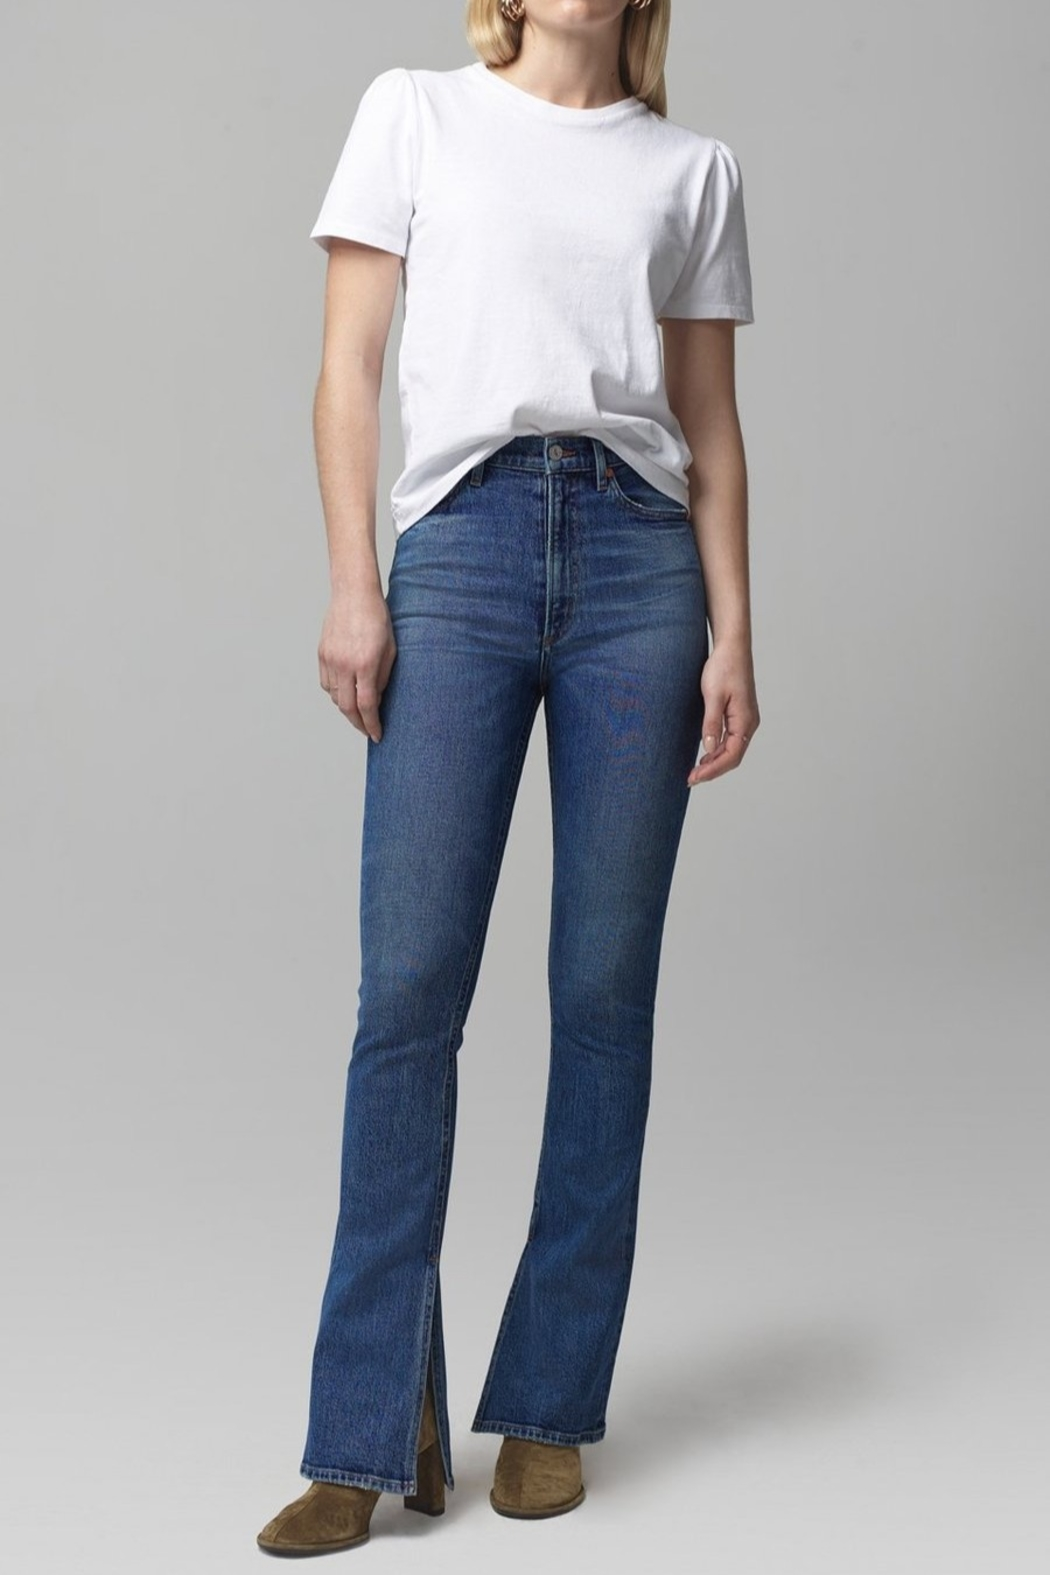 Citizens of Humanity Georgia Flare Jeans in Heist - Front Cropped Image